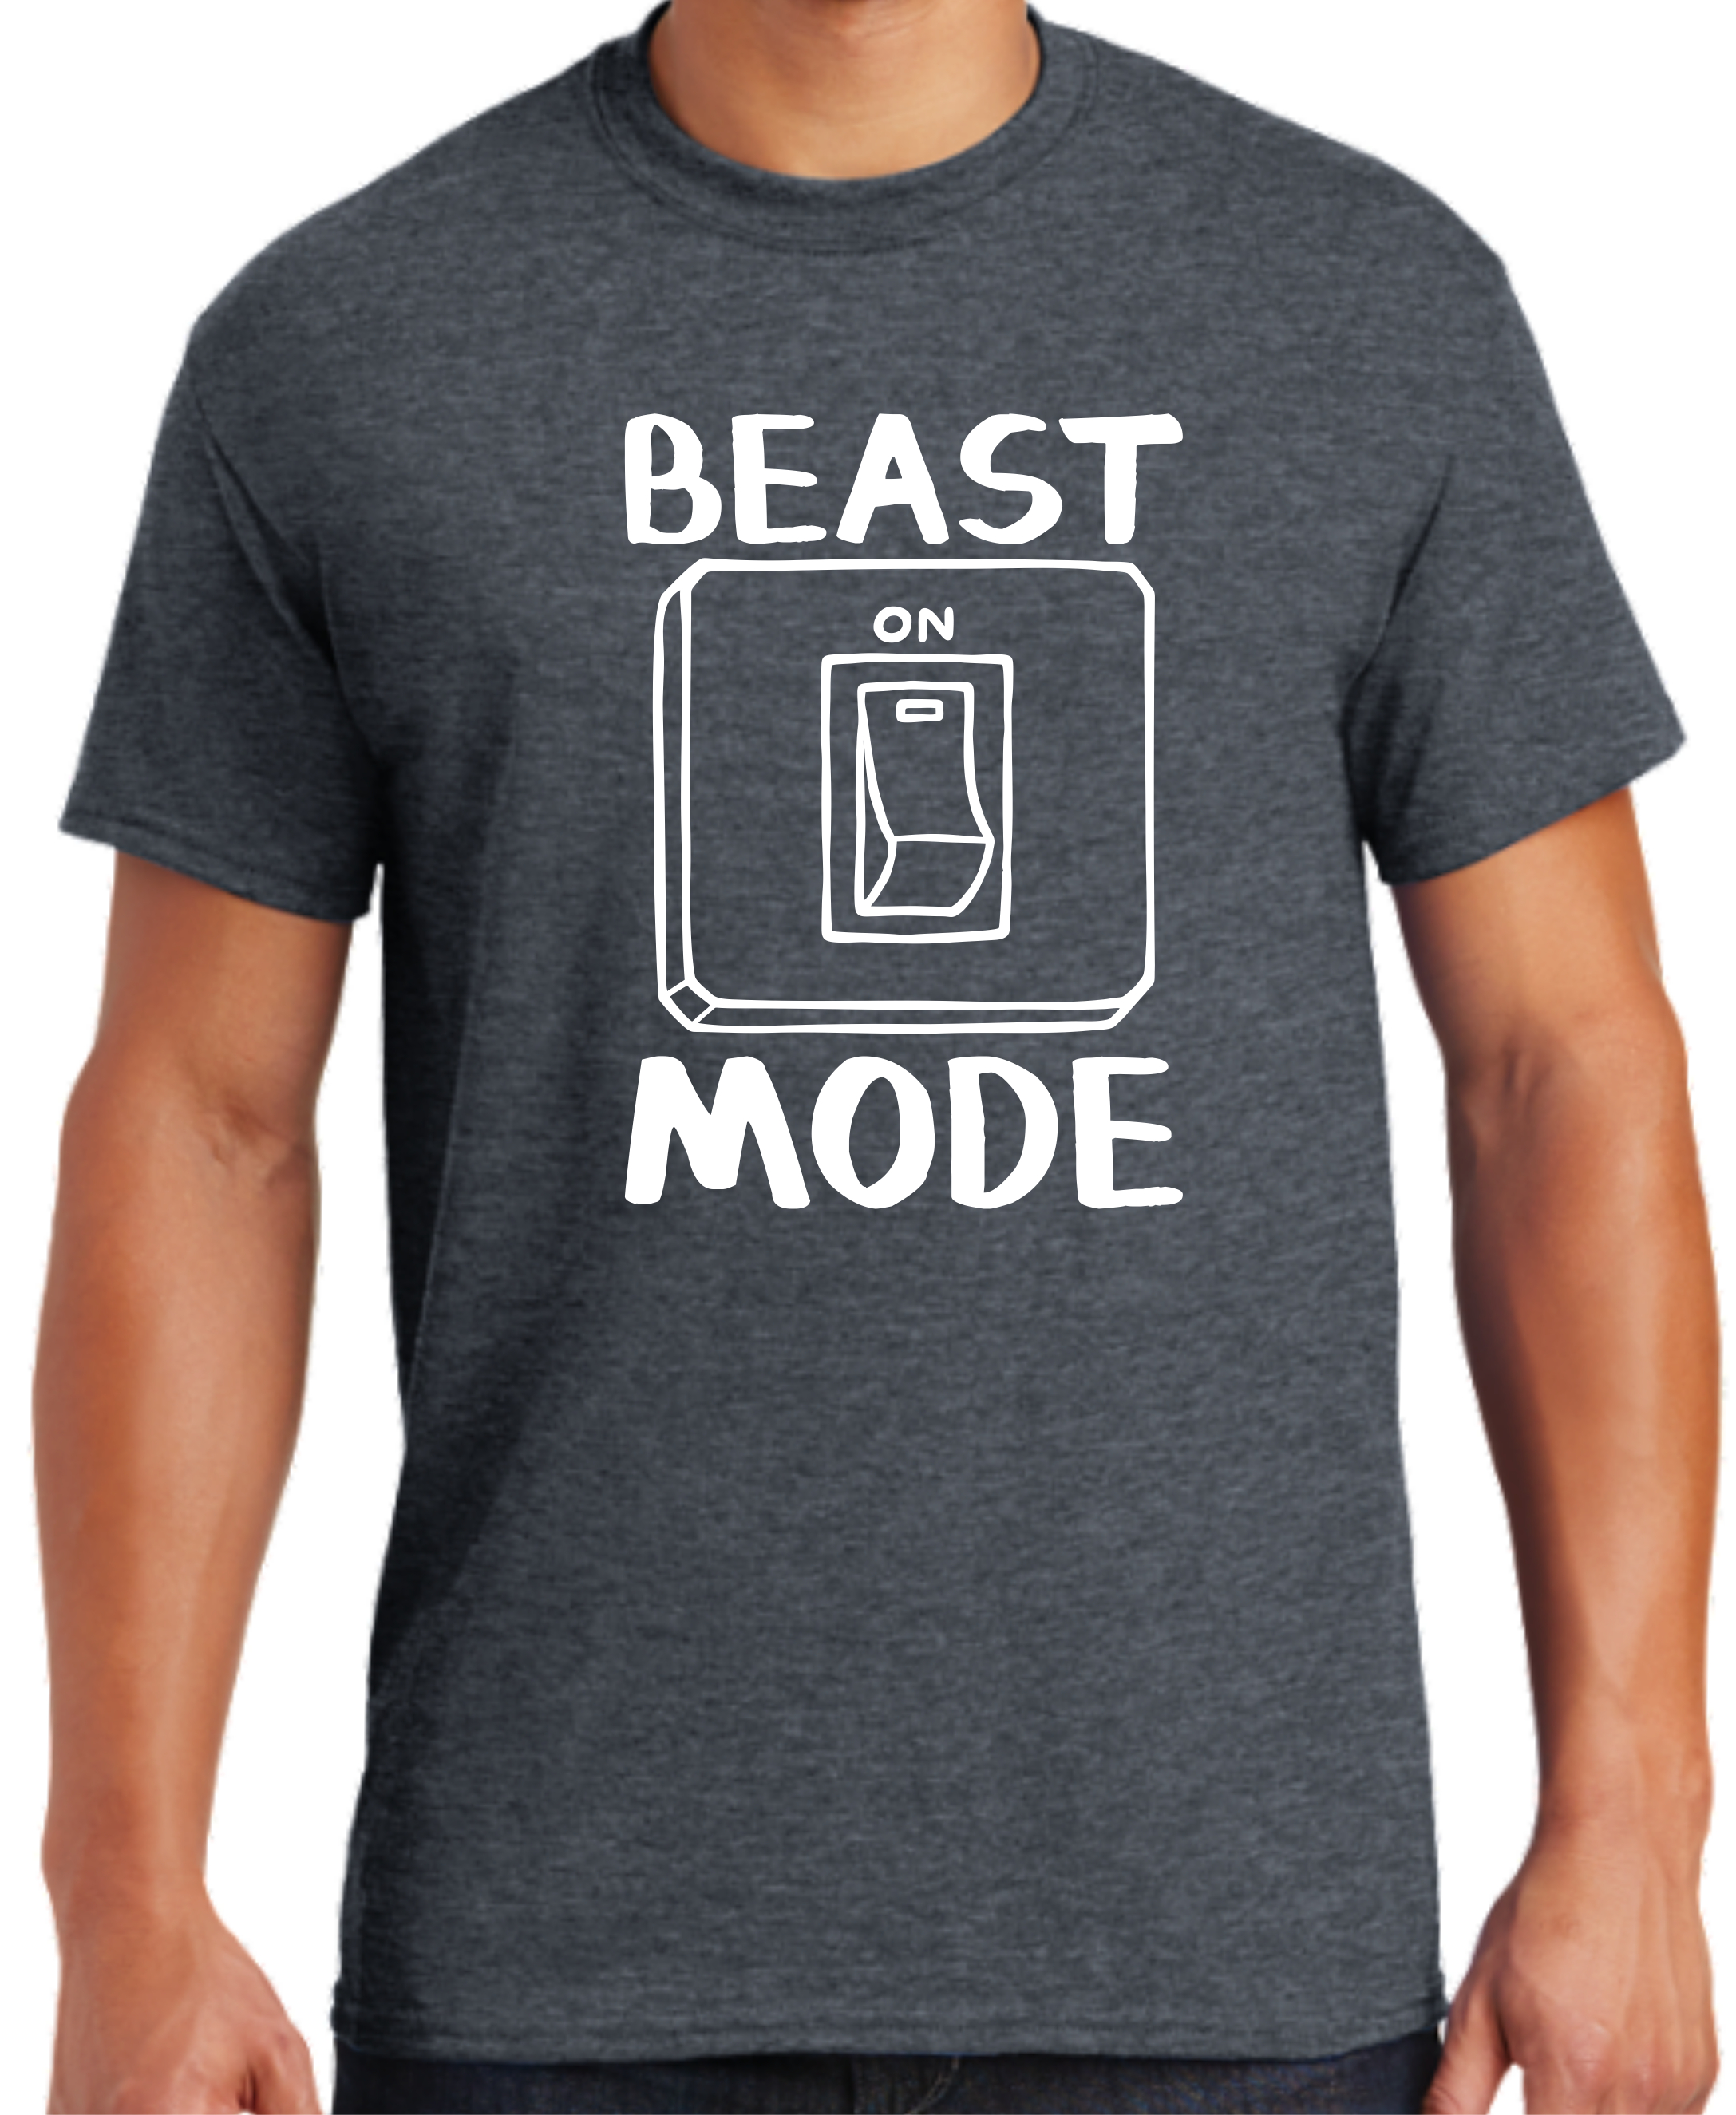 106-61617 - beast mode - DARK HEATHER